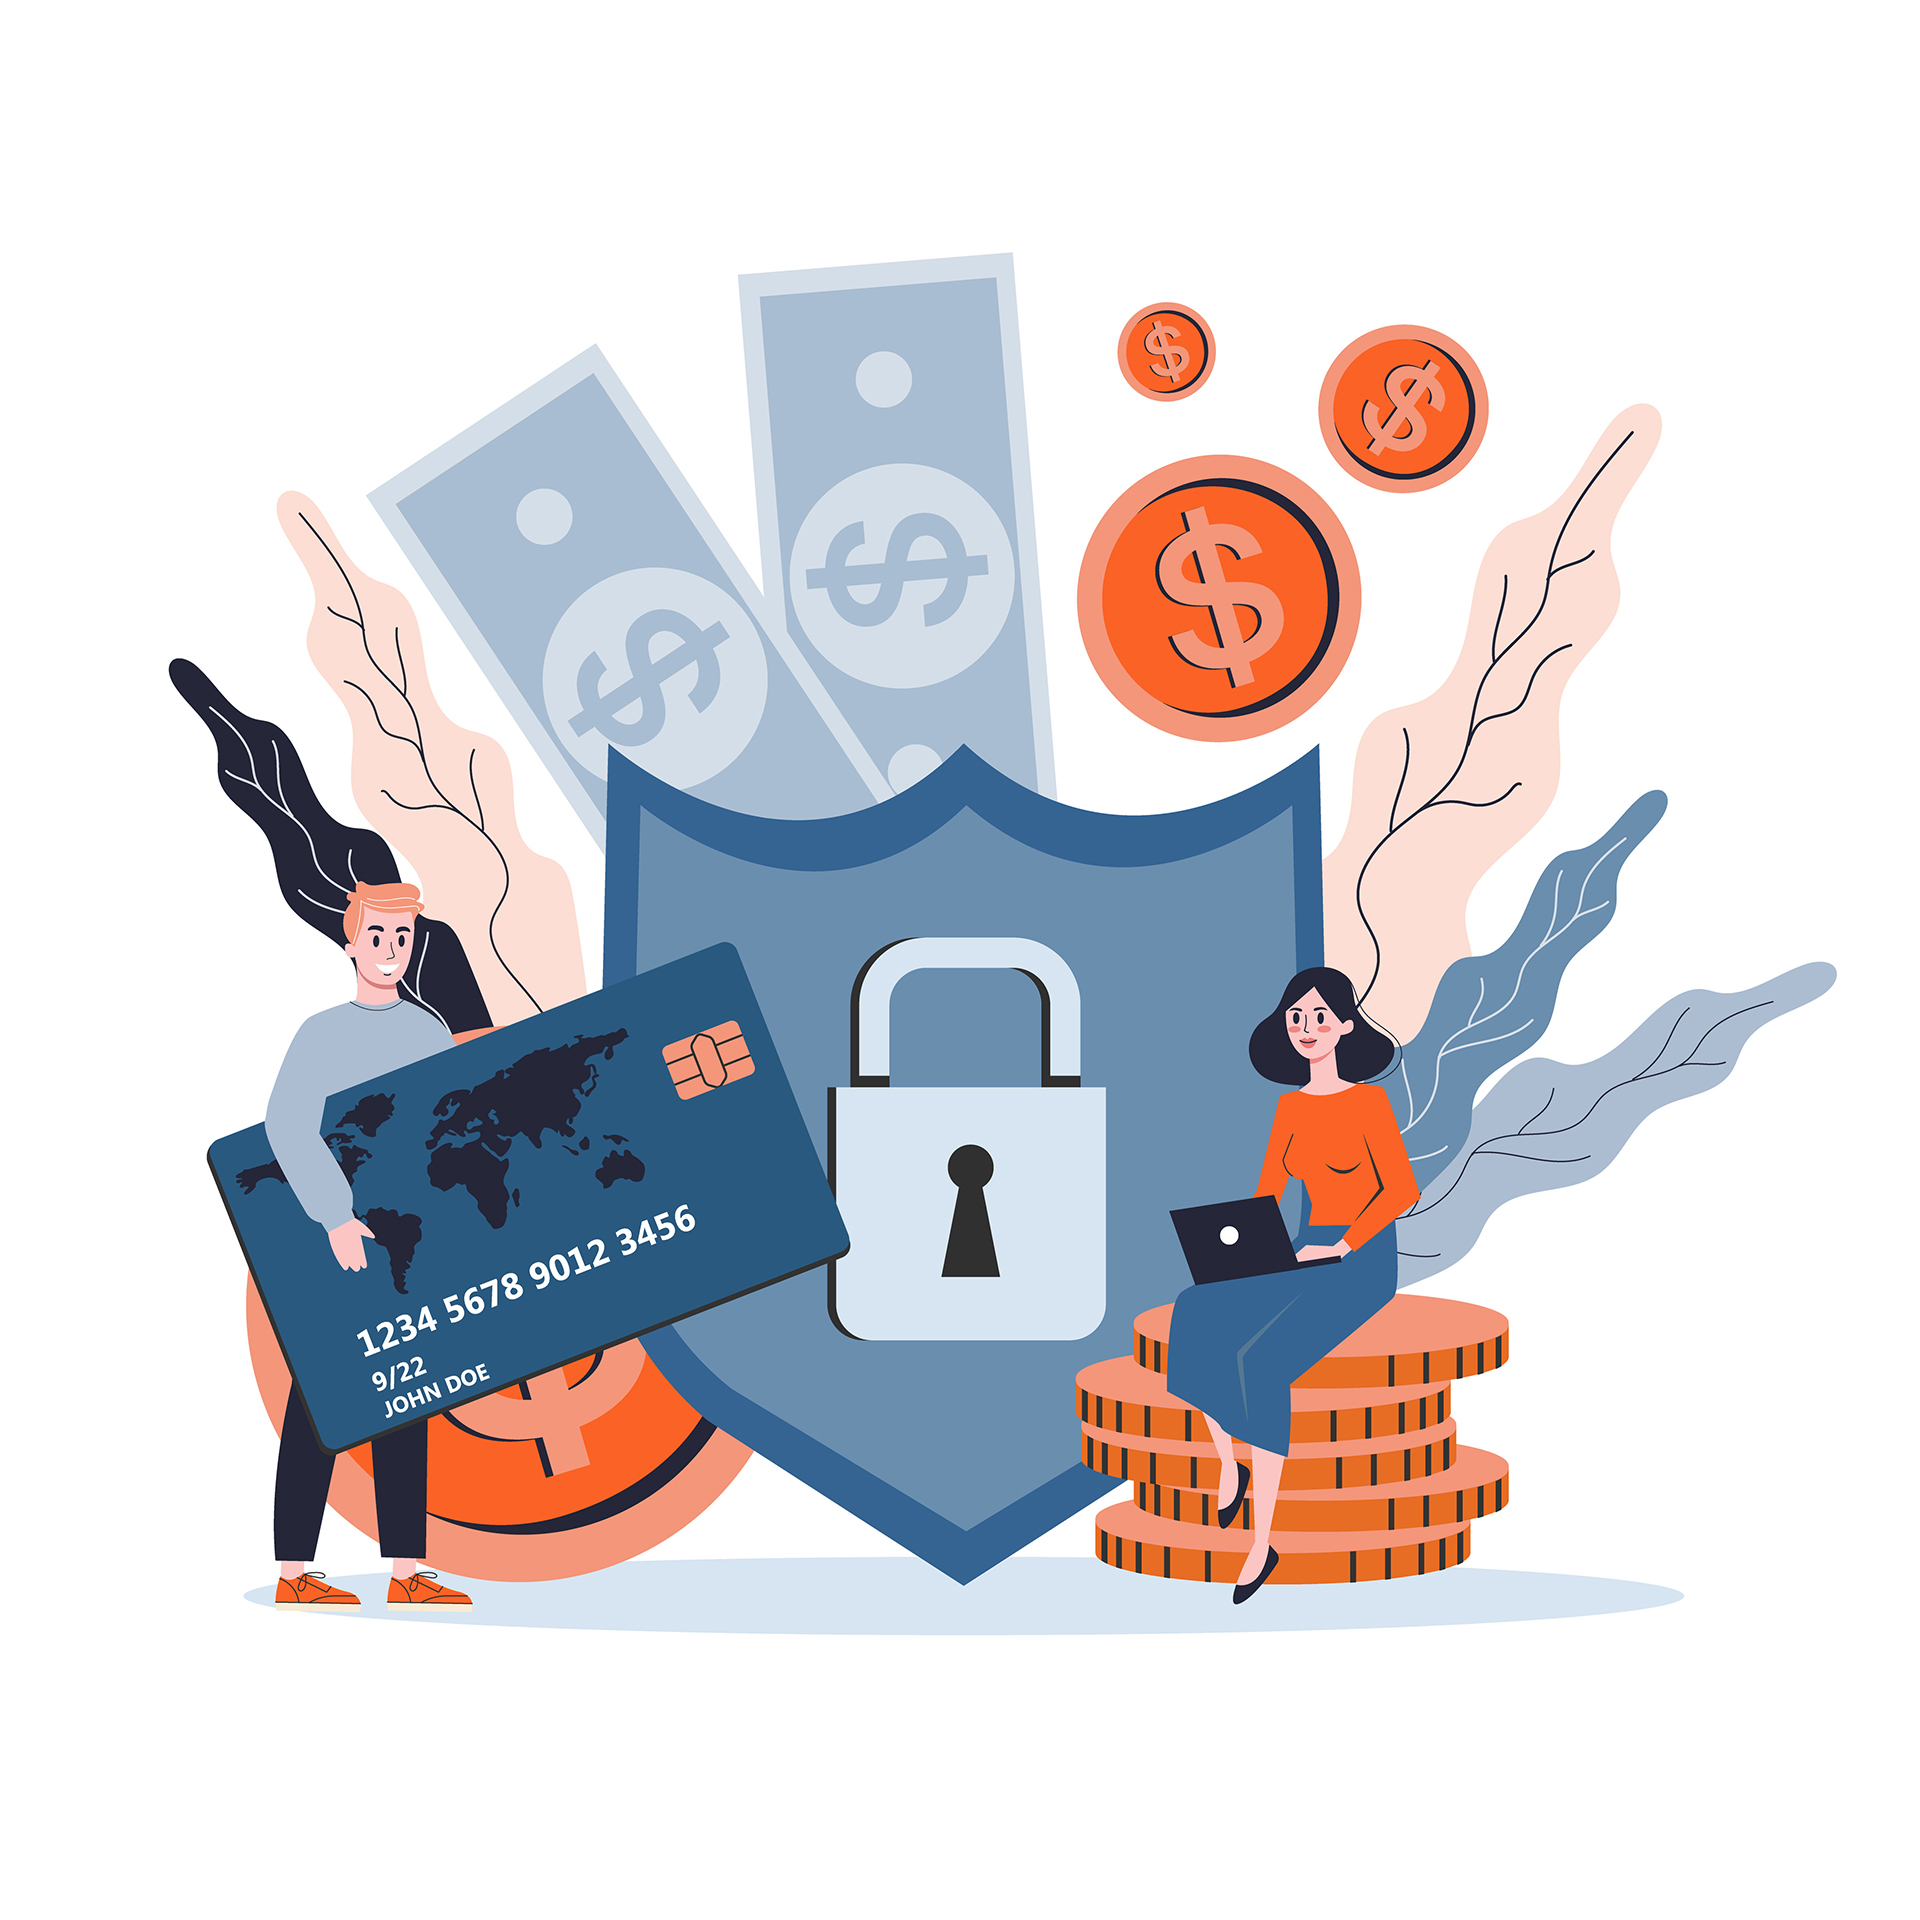 Isolated vector illustration of money protection concept, banking safety. Idea of secure payment, personal information security, bank account protection.